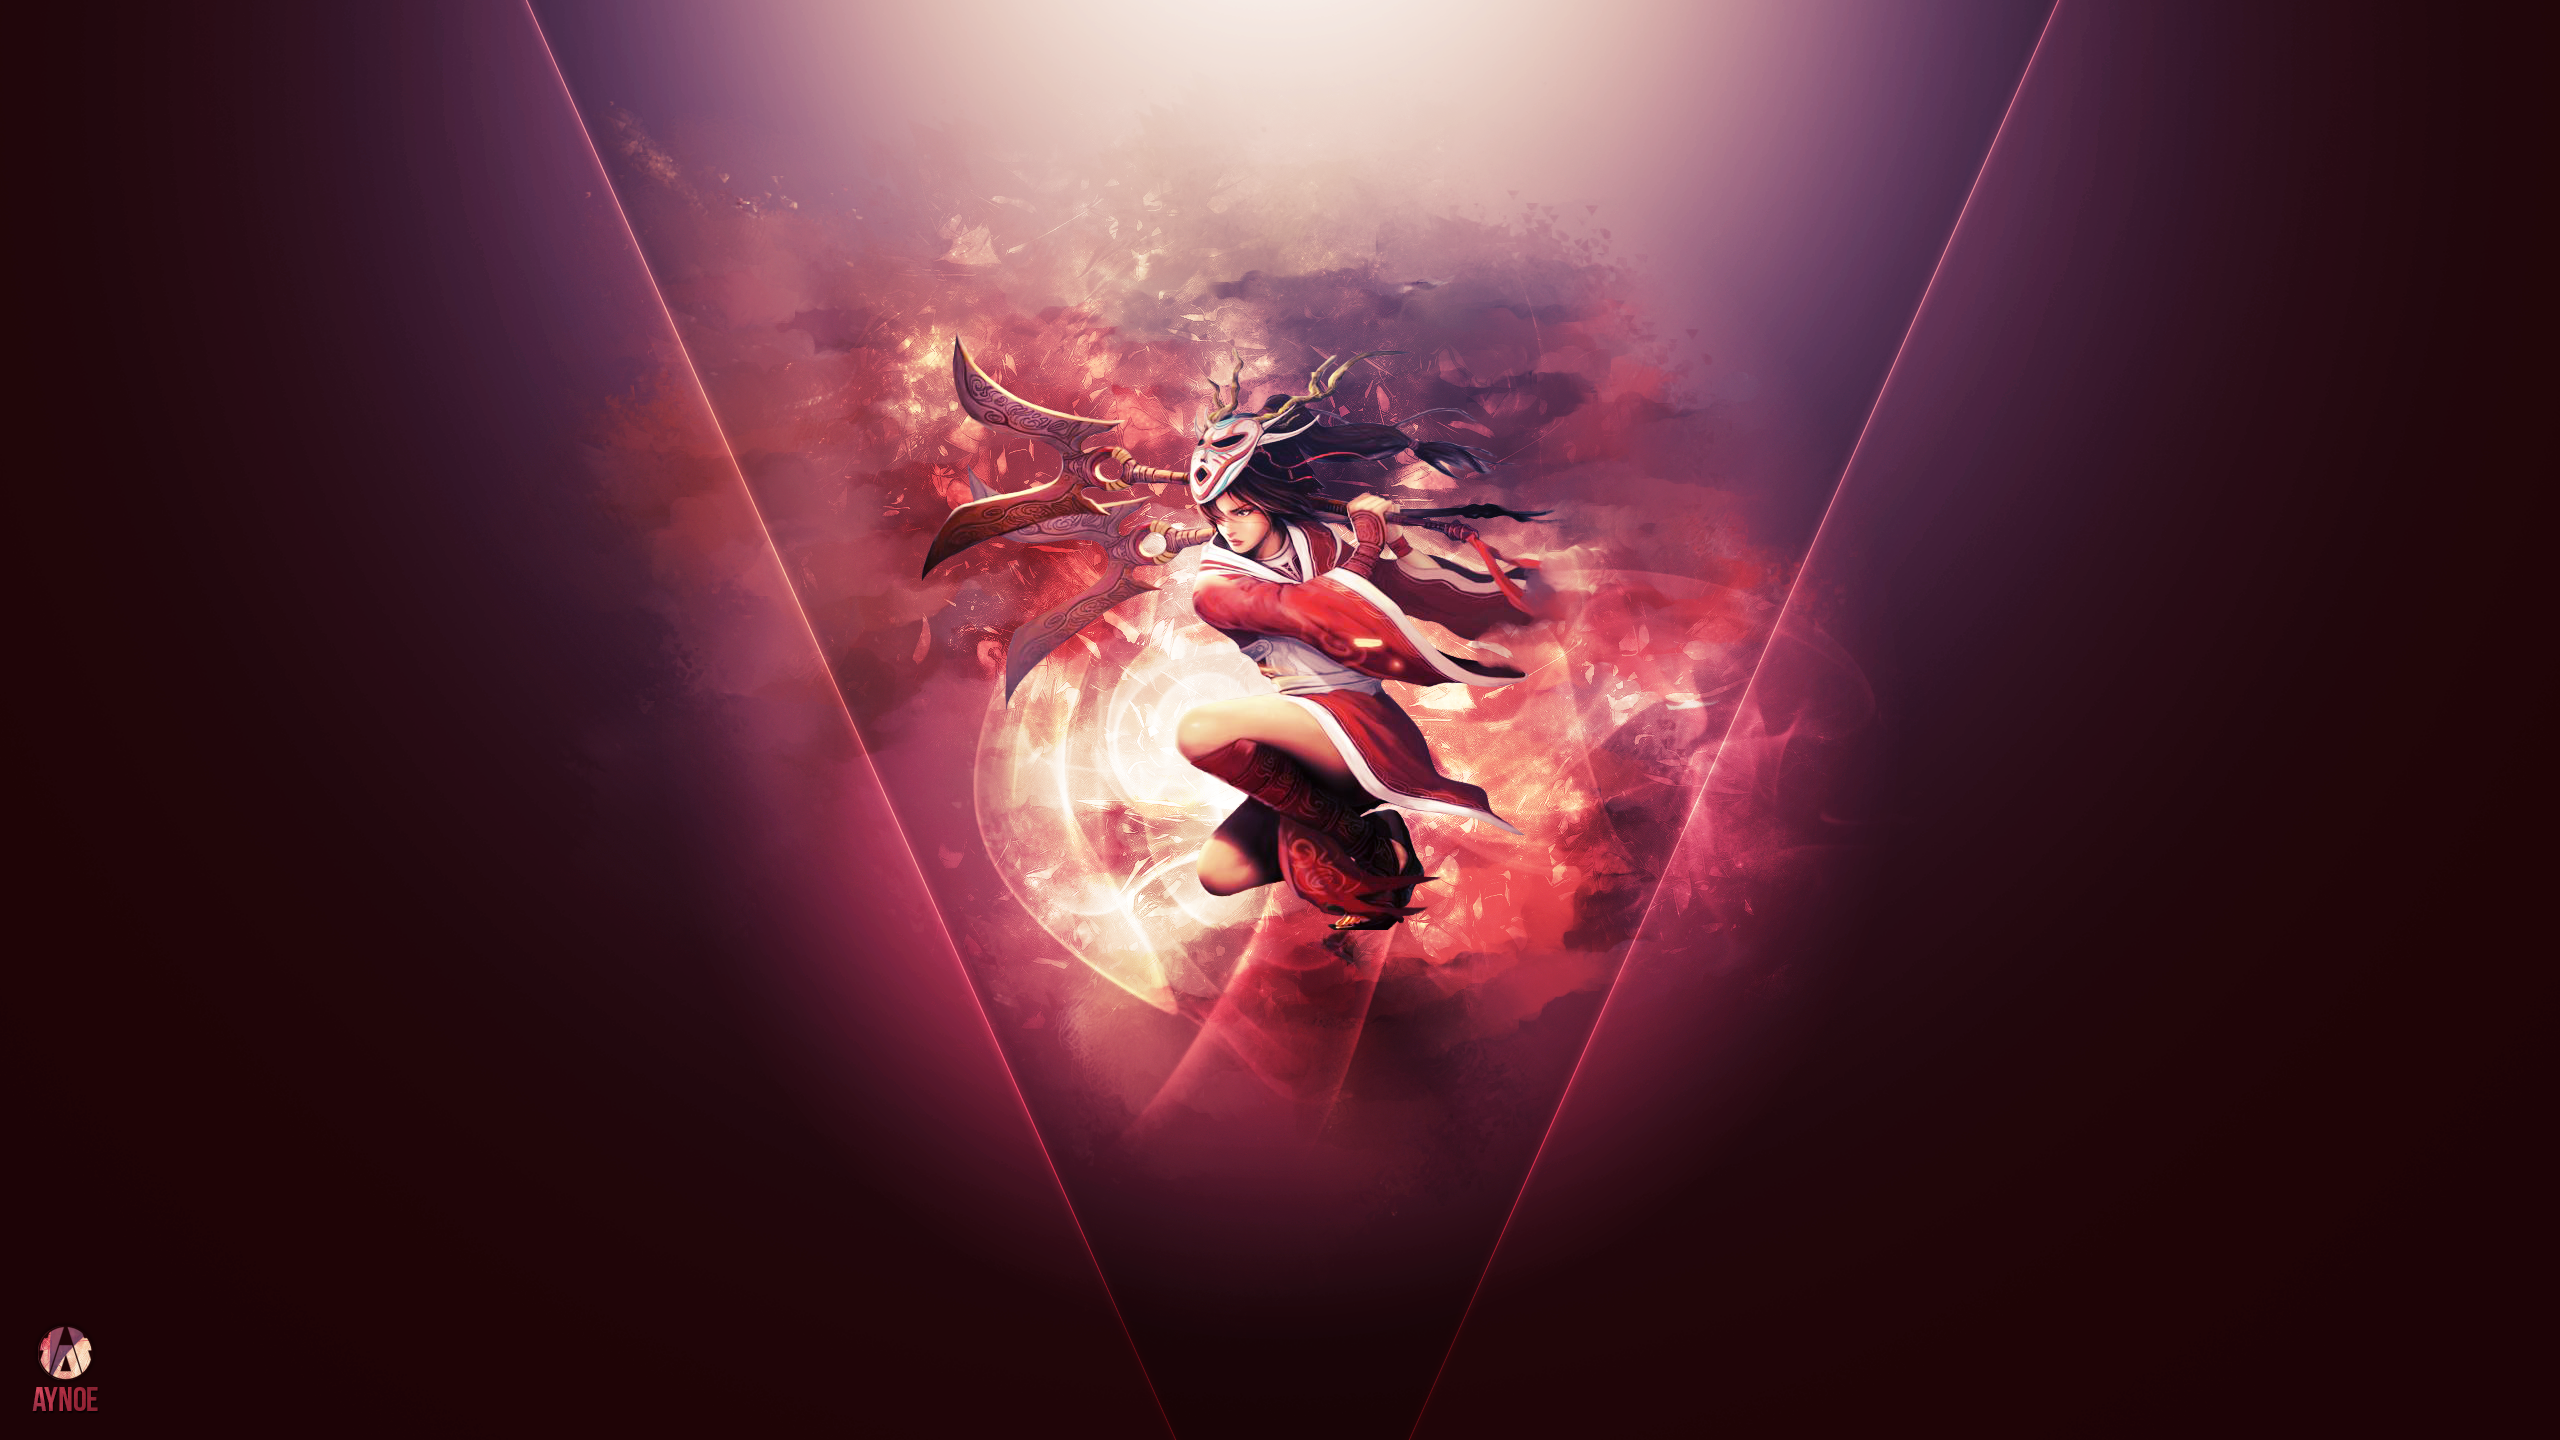 Akali Blood Moon League Of Legends Wallpaper By Aynoe On